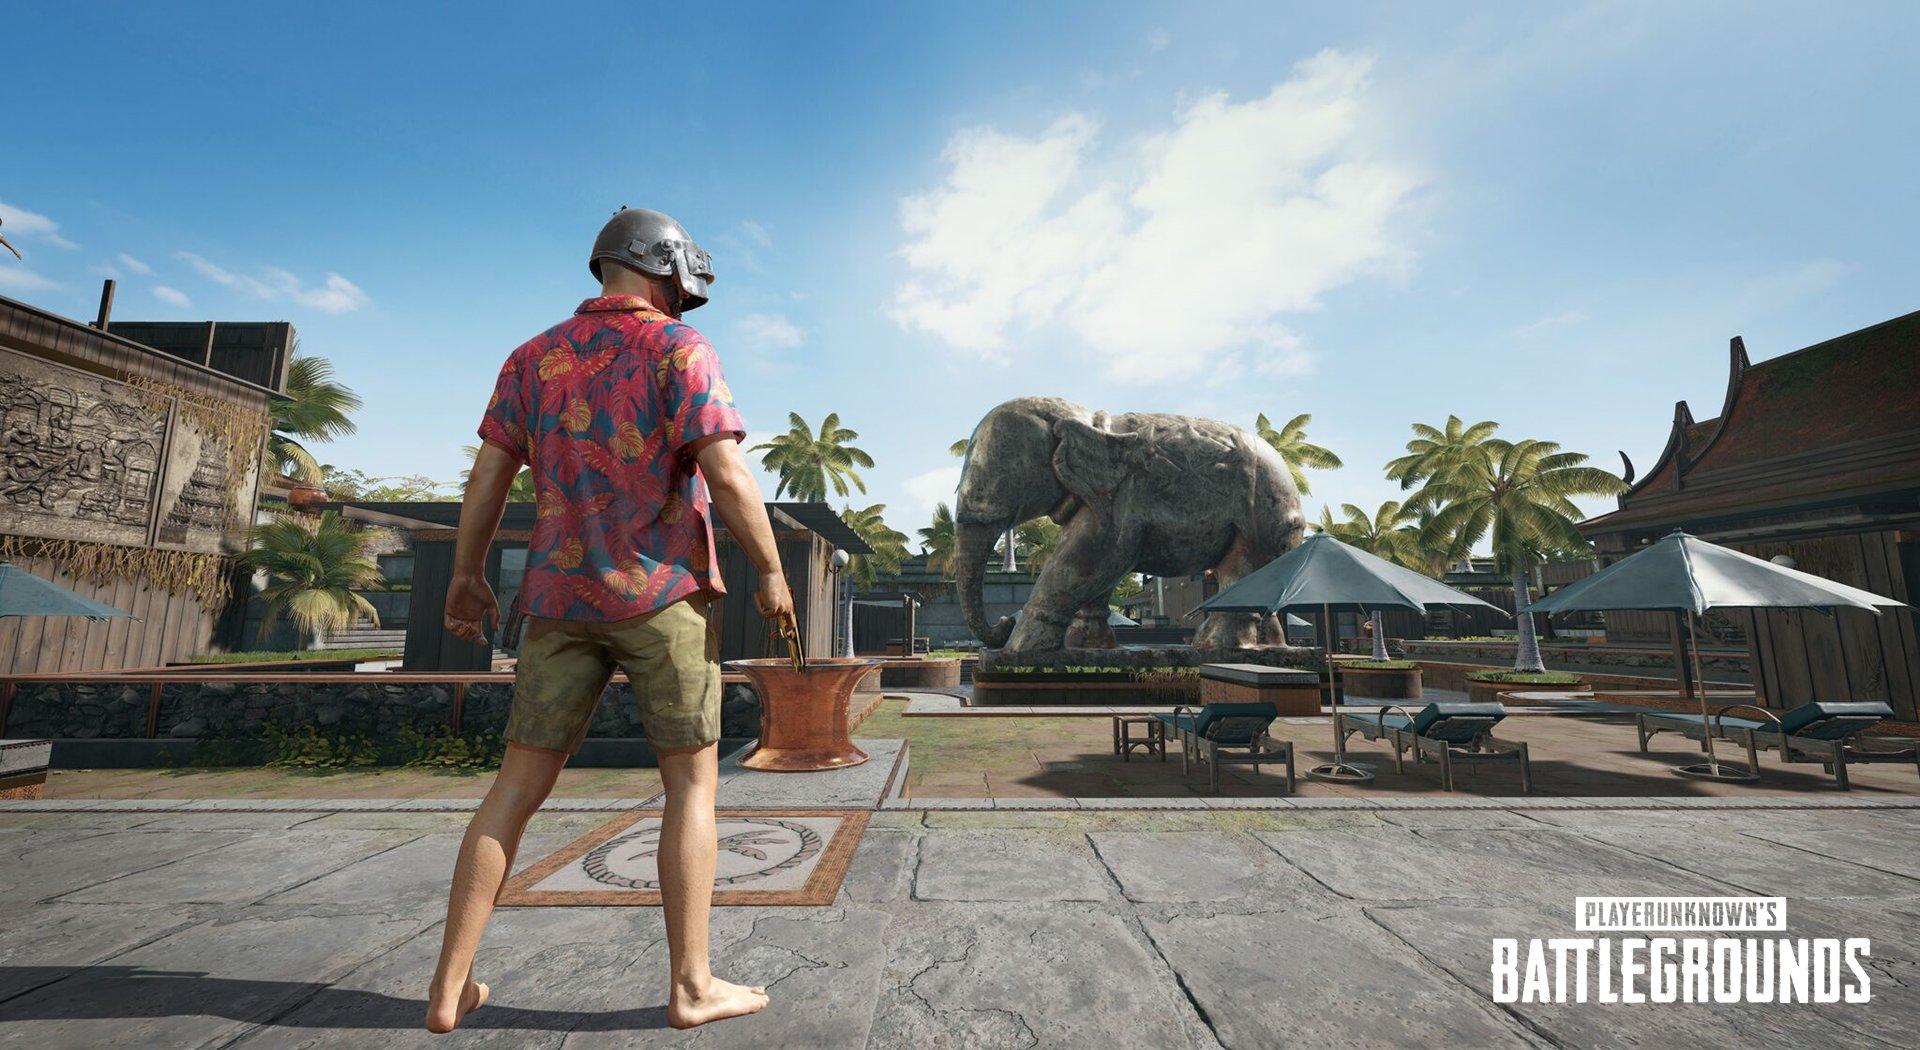 Pubg Hd Wallpaper For Mi Note 4: PUBG Dev Adds New Free Items To Sanhok Event Pass